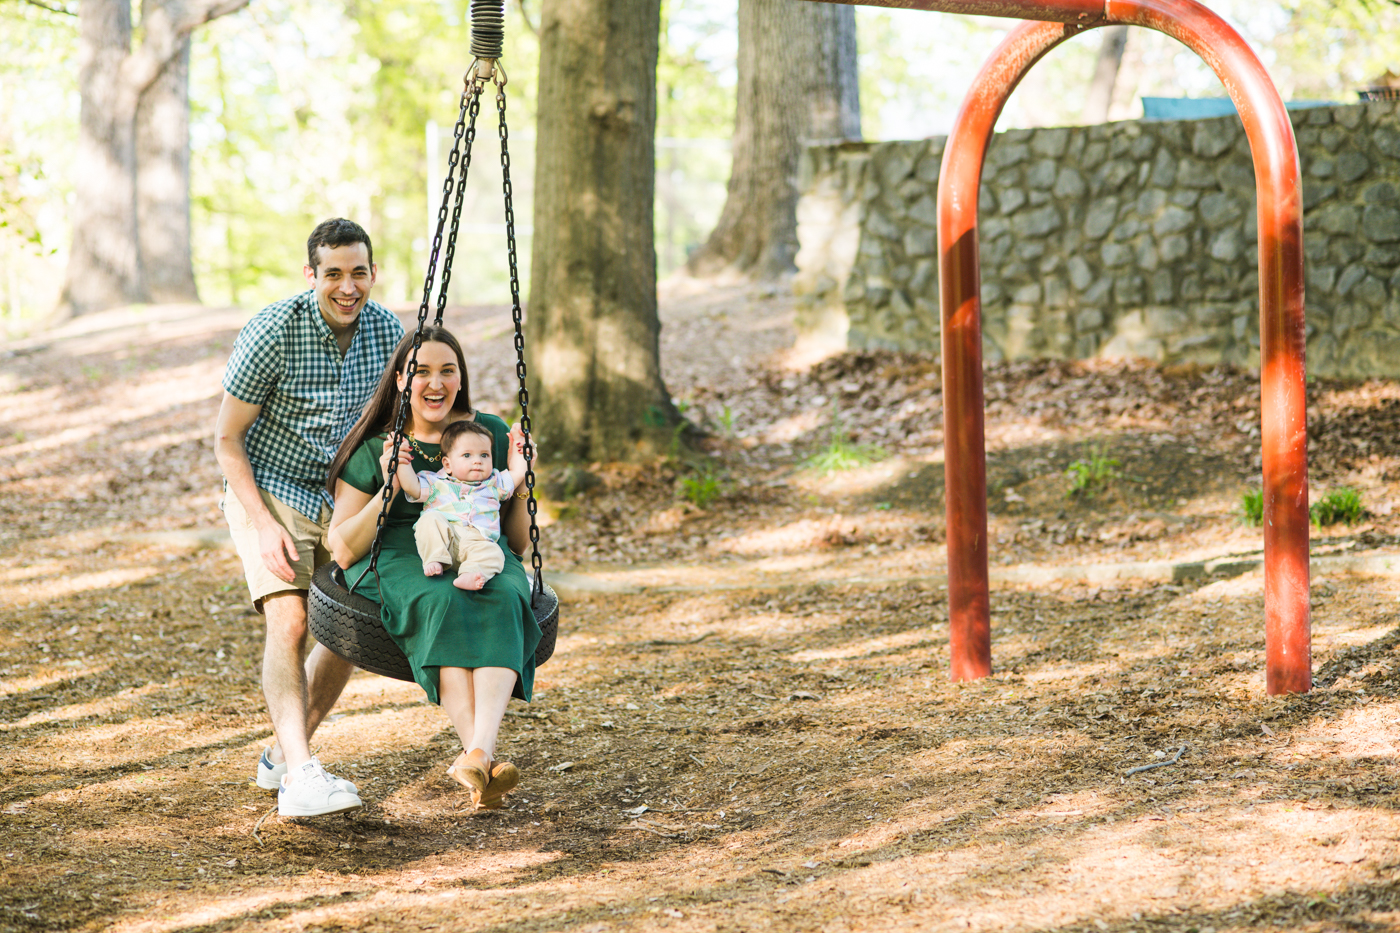 Father pushing mother and baby on a swing in Atlanta GA Raven Shutley lifestyle family photos